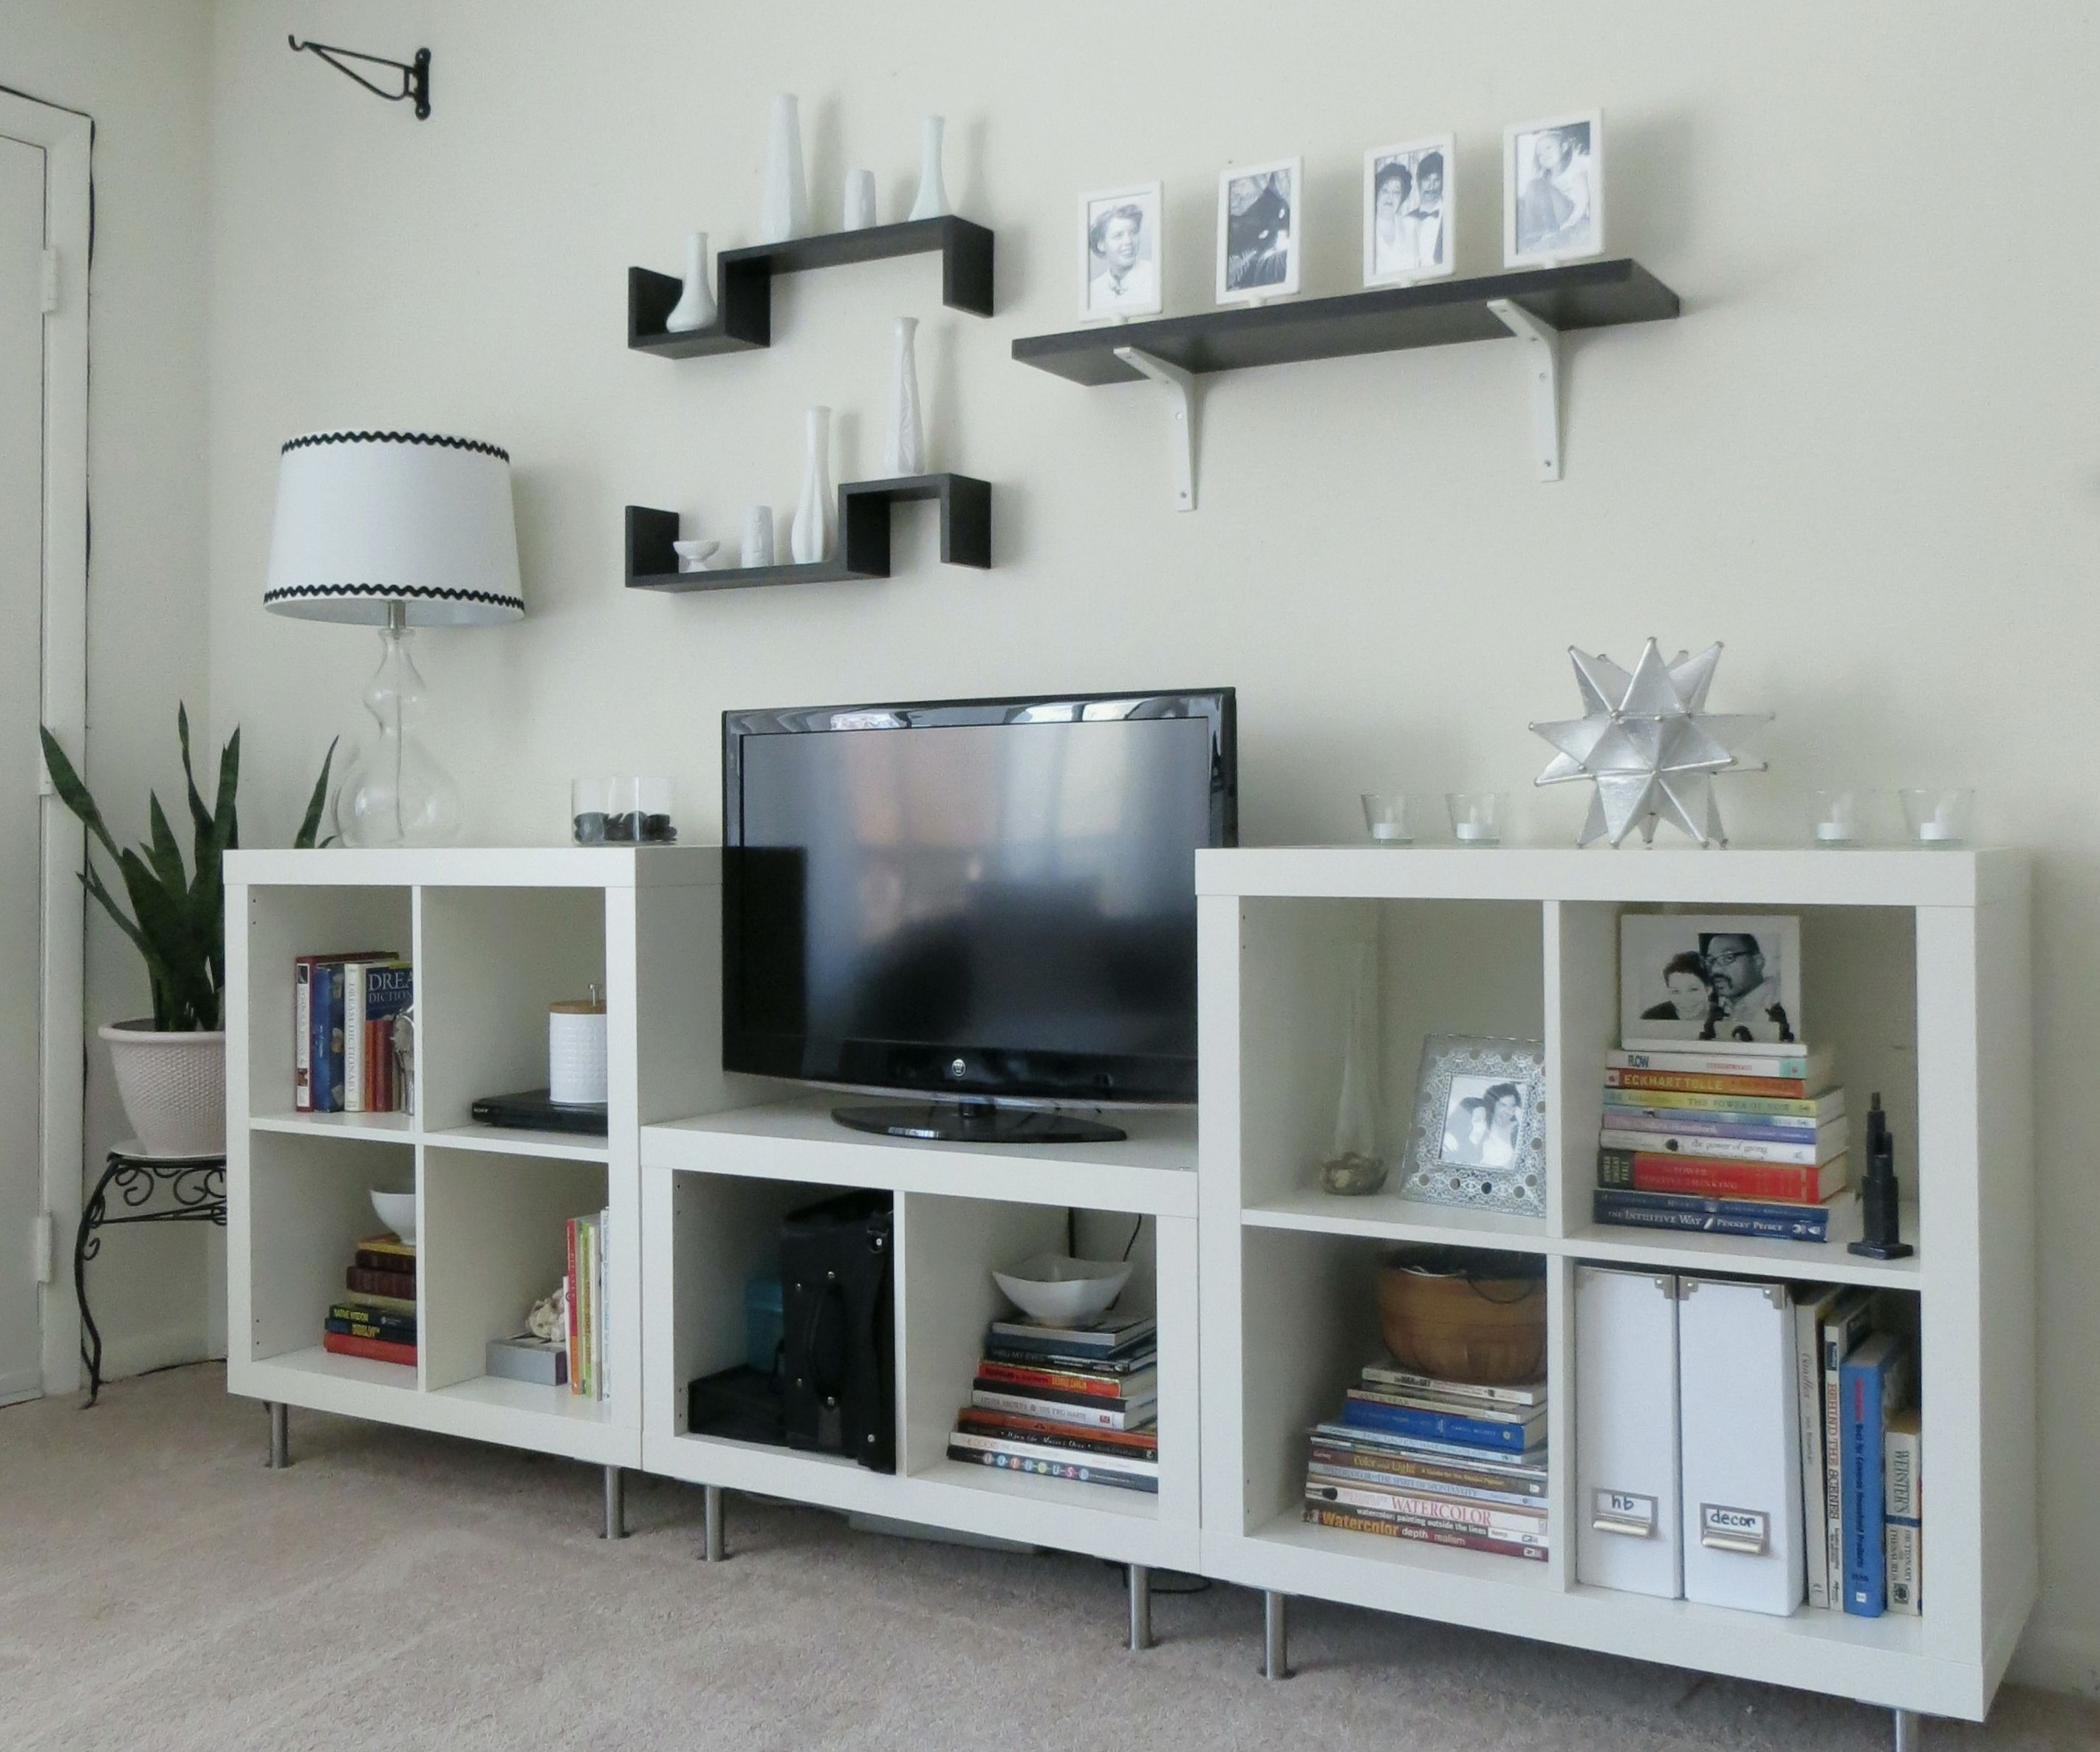 Tv Stands 10 Great Design Entertainment Centers With Bookshelves Inside Tv And Bookshelf (View 13 of 15)